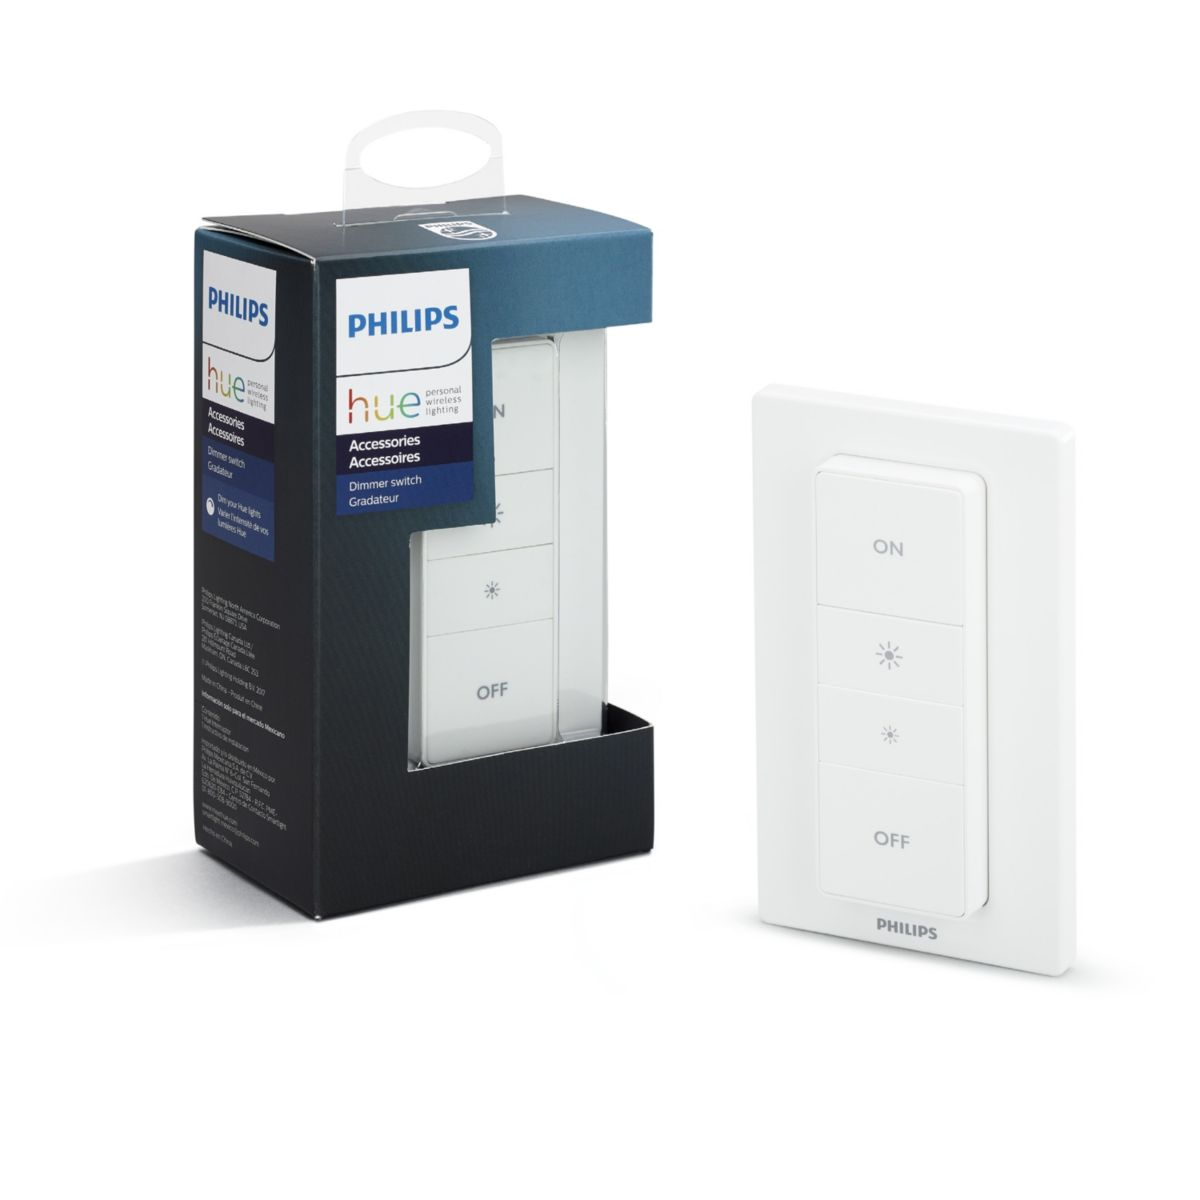 Hue Dimmer Switch 046677473372 Philips